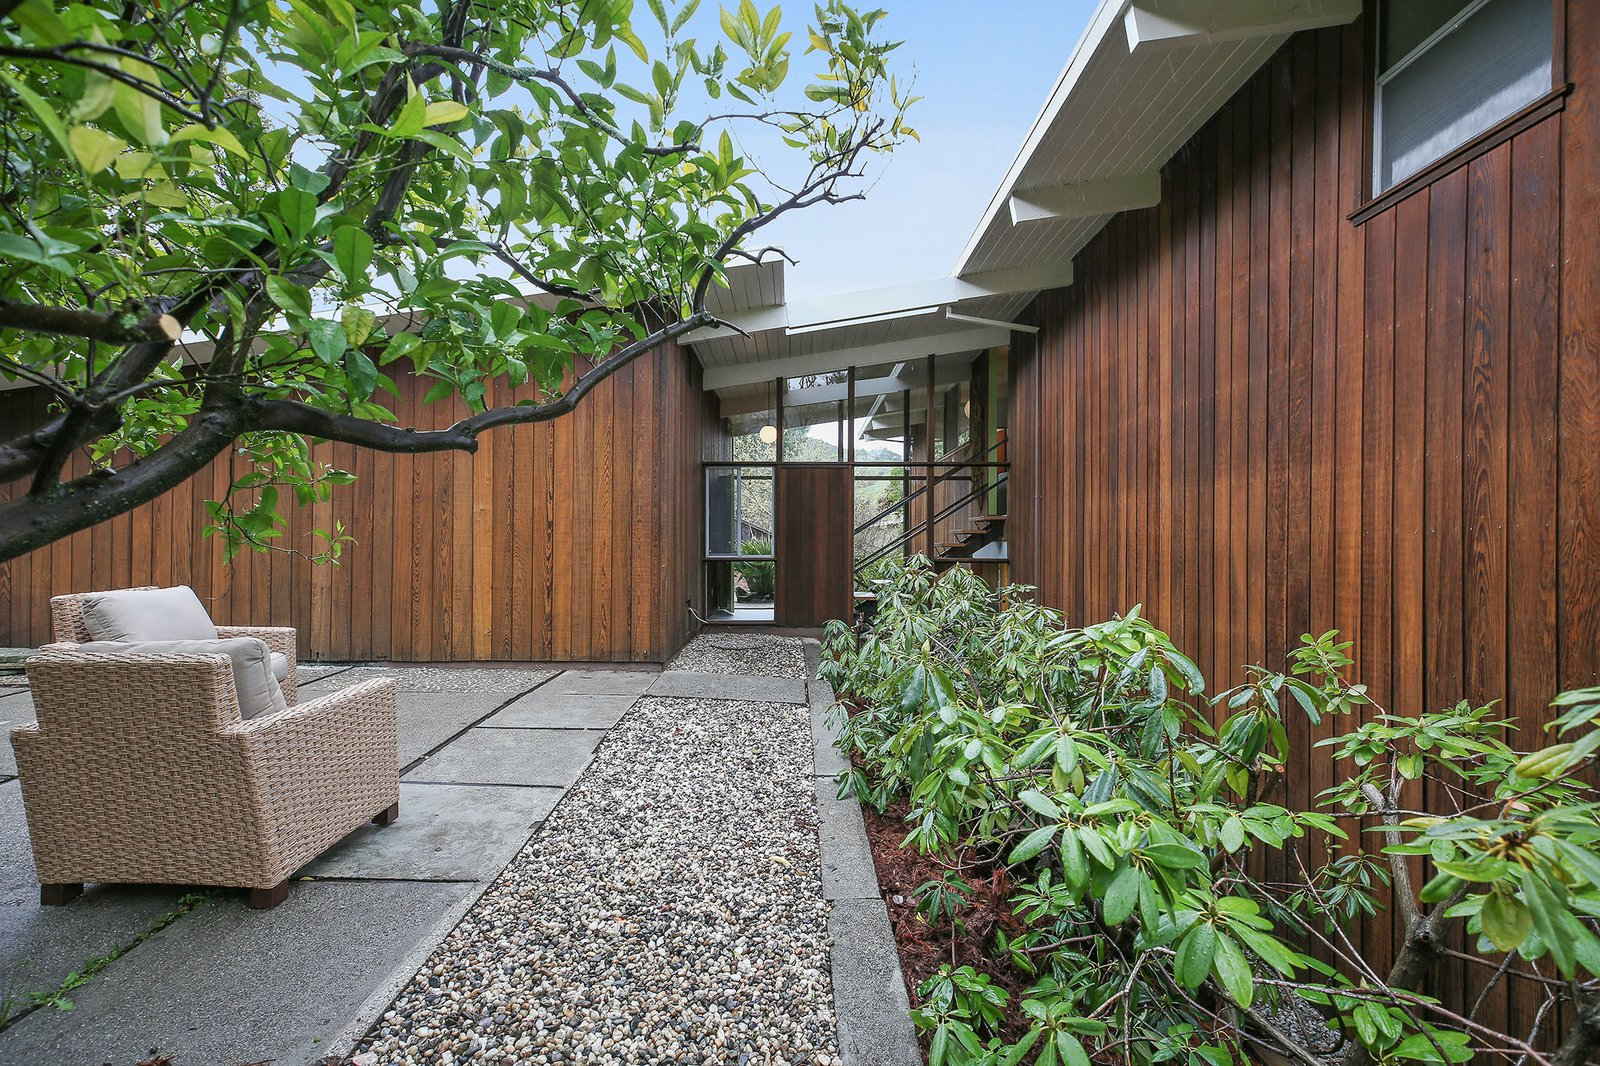 Exterior, Mid-Century Building Type, House Building Type, Wood Siding Material, and Flat RoofLine The home has a strong connection to the outdoors, despite missing the central a  Photo 15 of 15 in This Rare Two-Story Eichler Has Just Been Listed For $1.35M